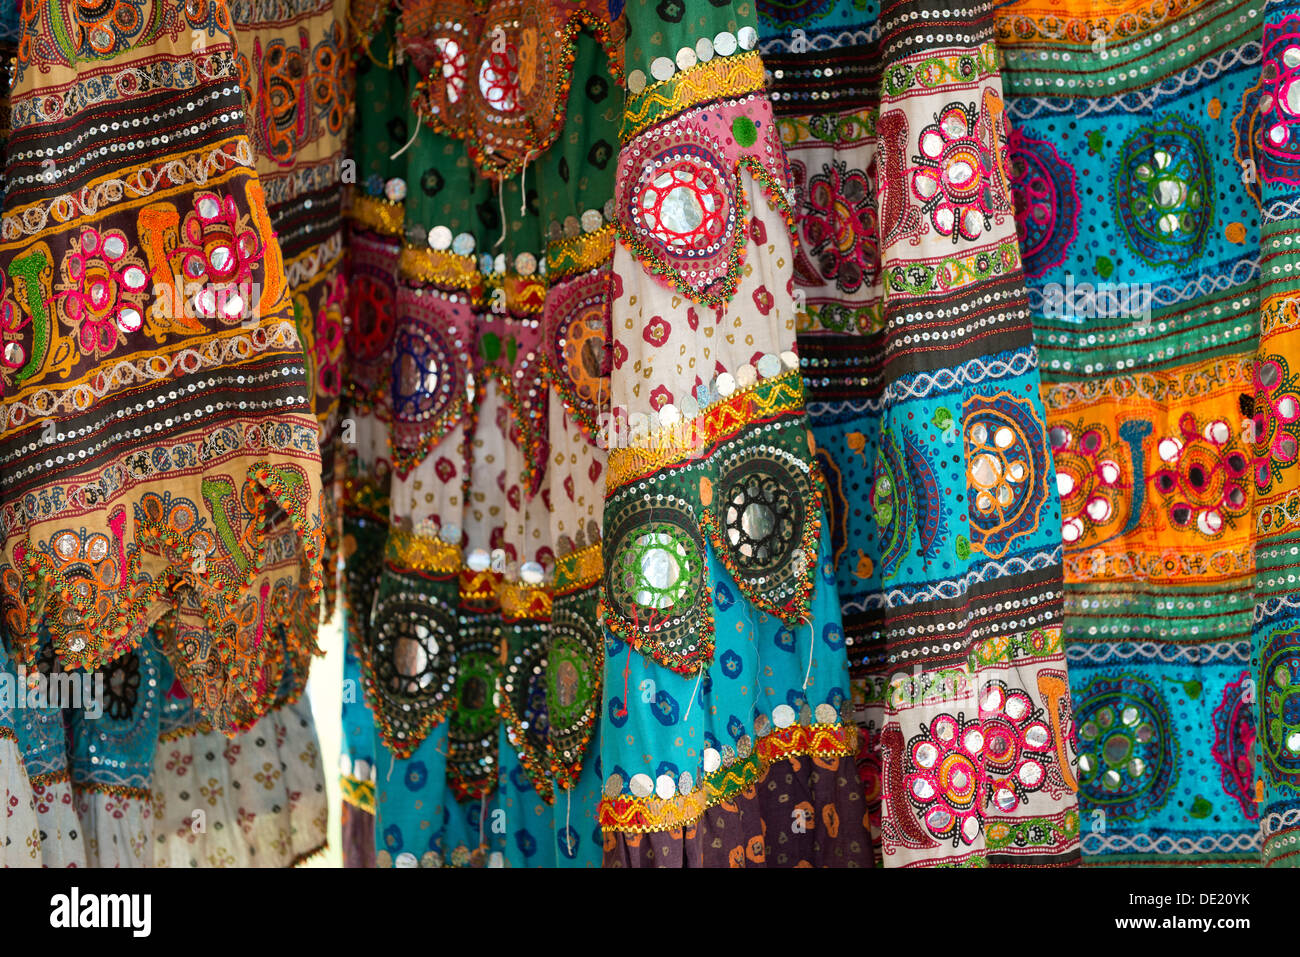 Colourful skirts inlaid with mirrors and different patterns, detail, Udaipur, Rajasthan, India Stock Photo